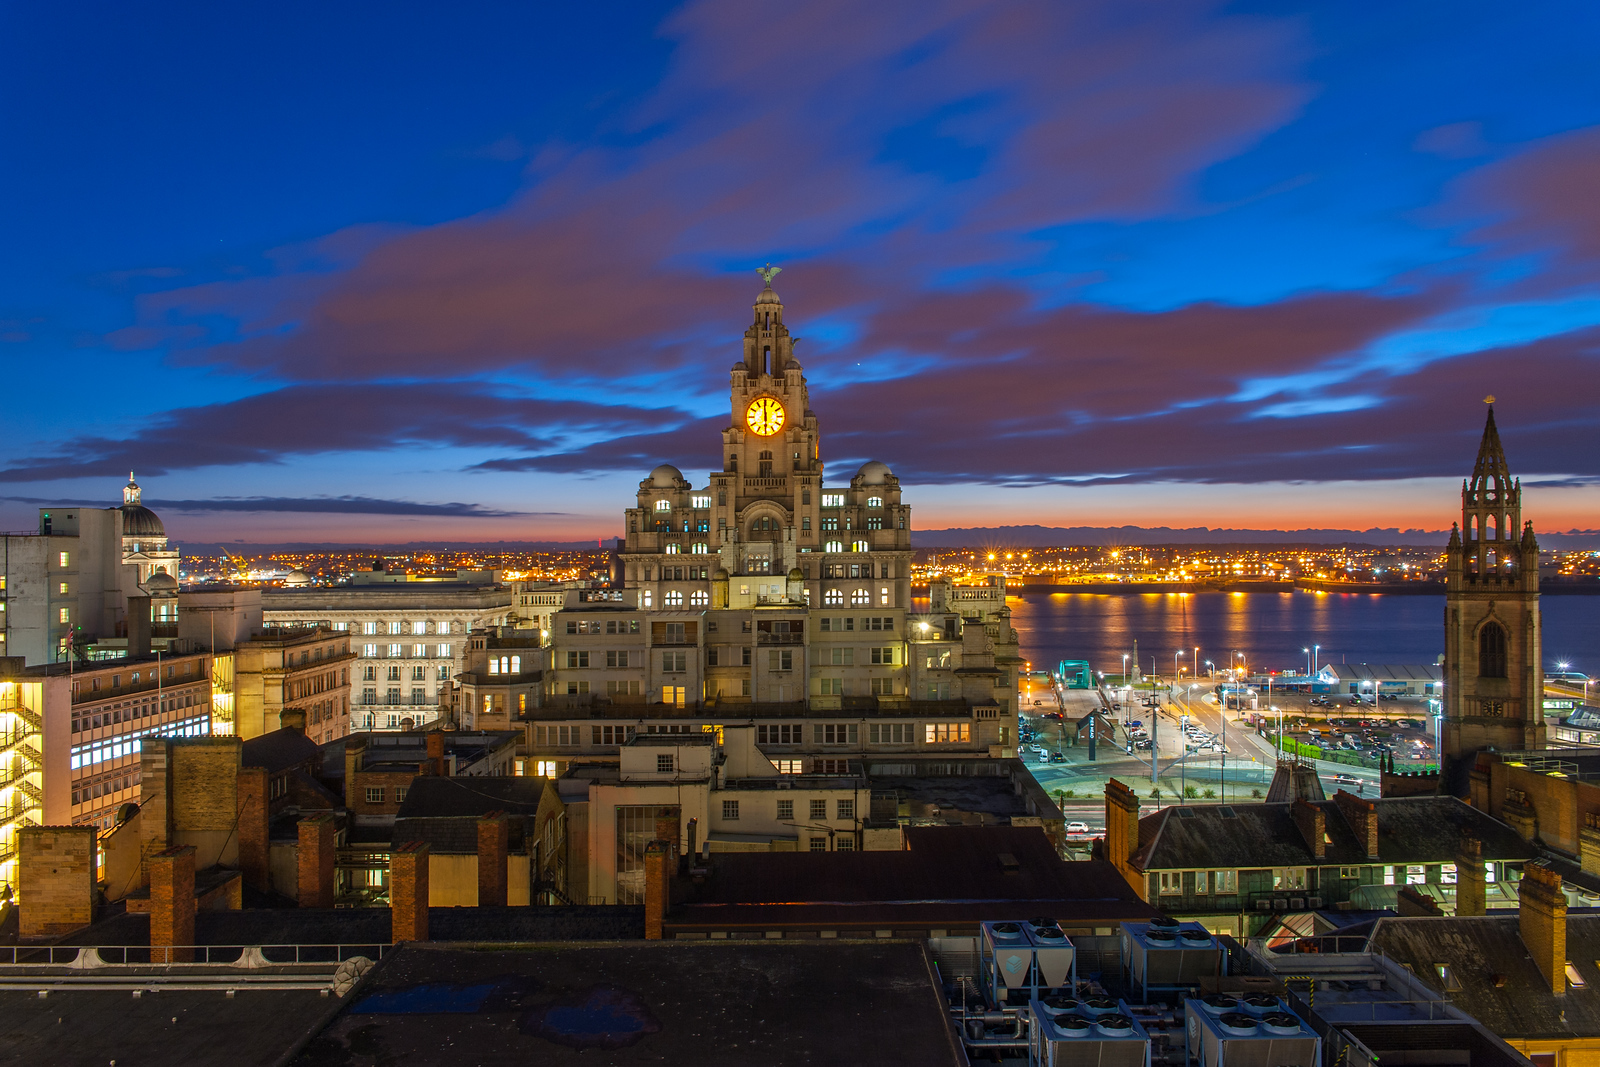 Royal Liver Building and River Mersey at Night